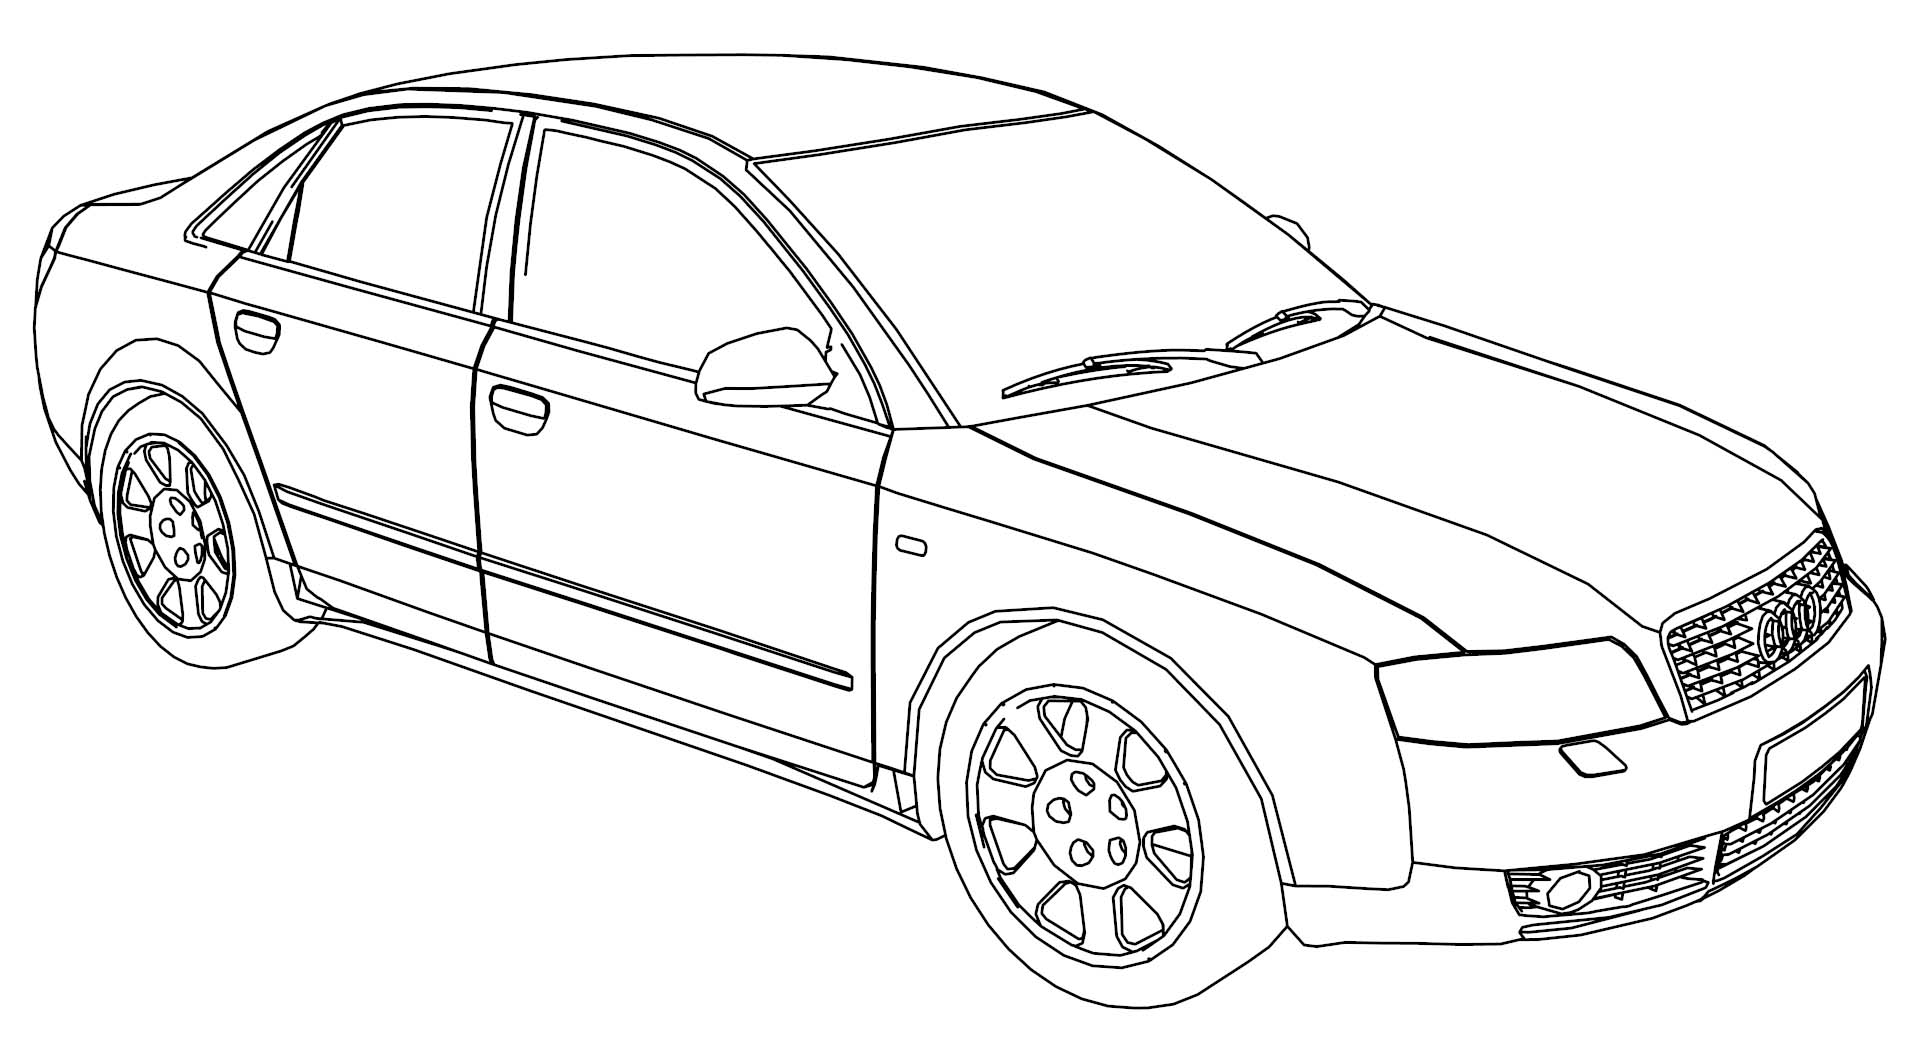 Audi A4 Side Coloring Page Wecoloringpage